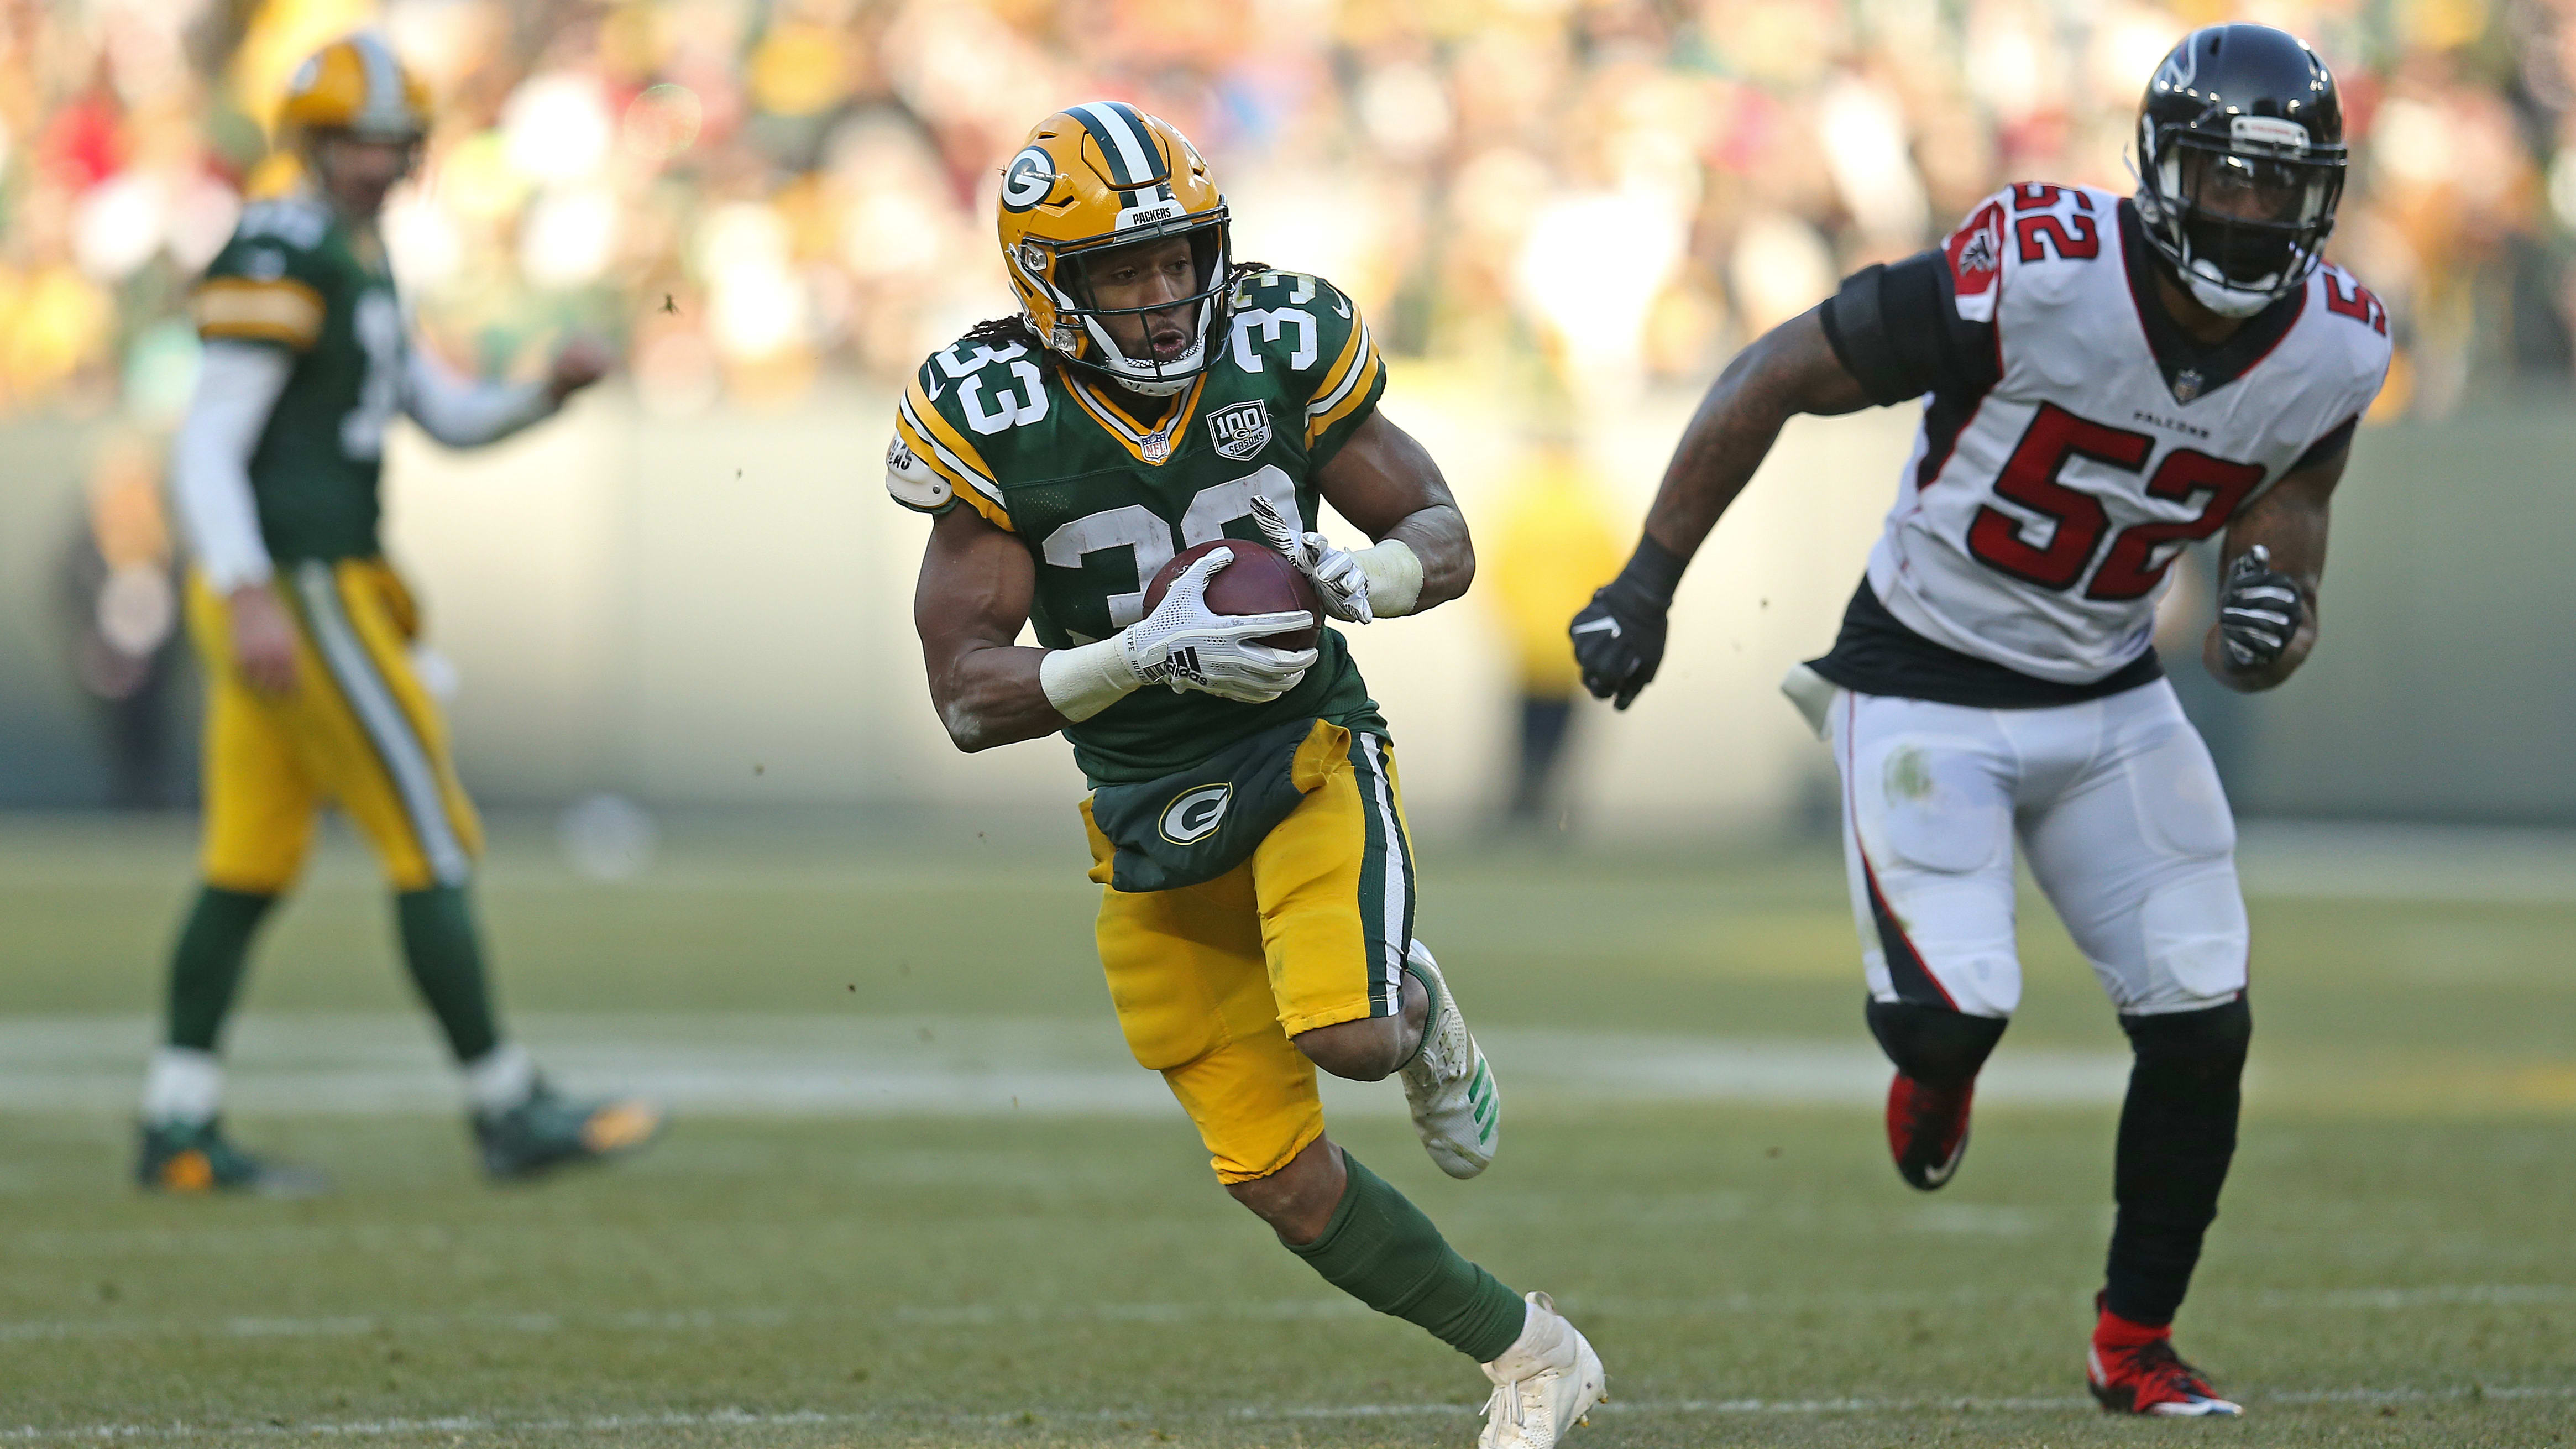 GREEN BAY, WISCONSIN - DECEMBER 09: Aaron Jones #33 of the Green Bay Packers runs the ball for a touchdown during the second half of a game against the Atlanta Falcons at Lambeau Field on December 09, 2018 in Green Bay, Wisconsin. (Photo by Dylan Buell/Getty Images)